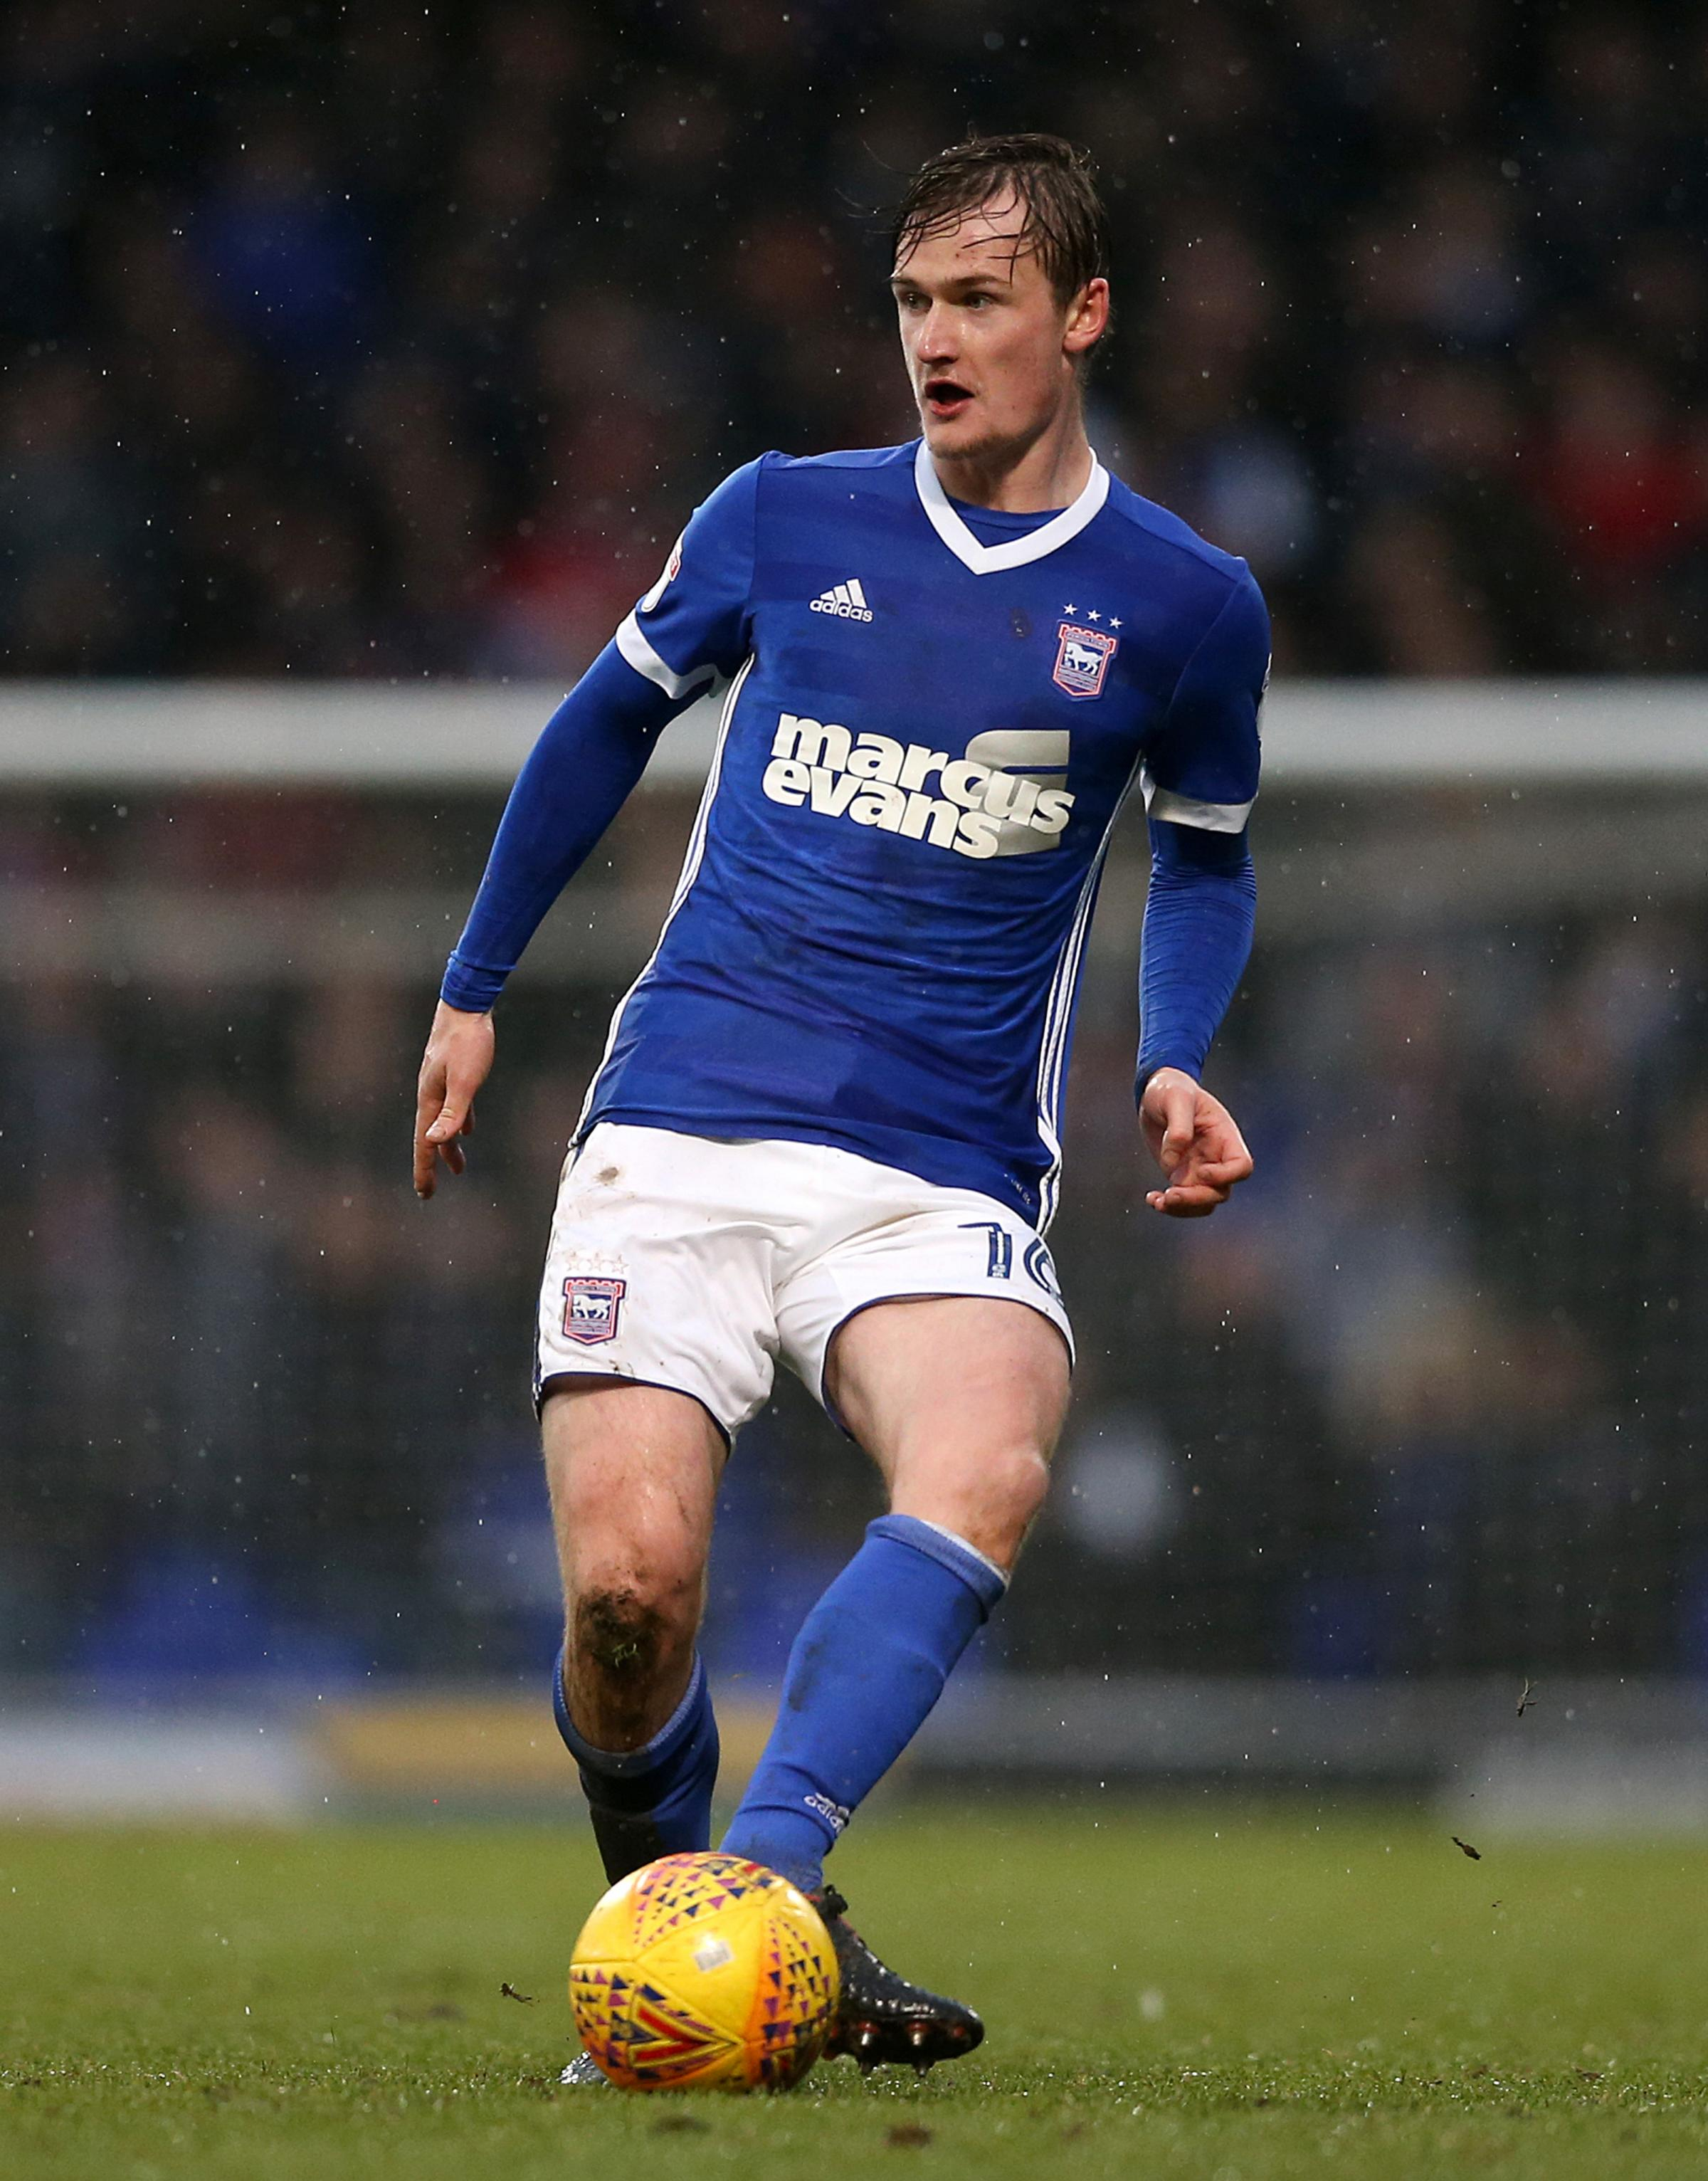 Ipswich Town's Callum Connolly during the Sky Bet Championship match at Portman Road, Ipswich. PRESS ASSOCIATION Photo. Picture date: Saturday January 27, 2018